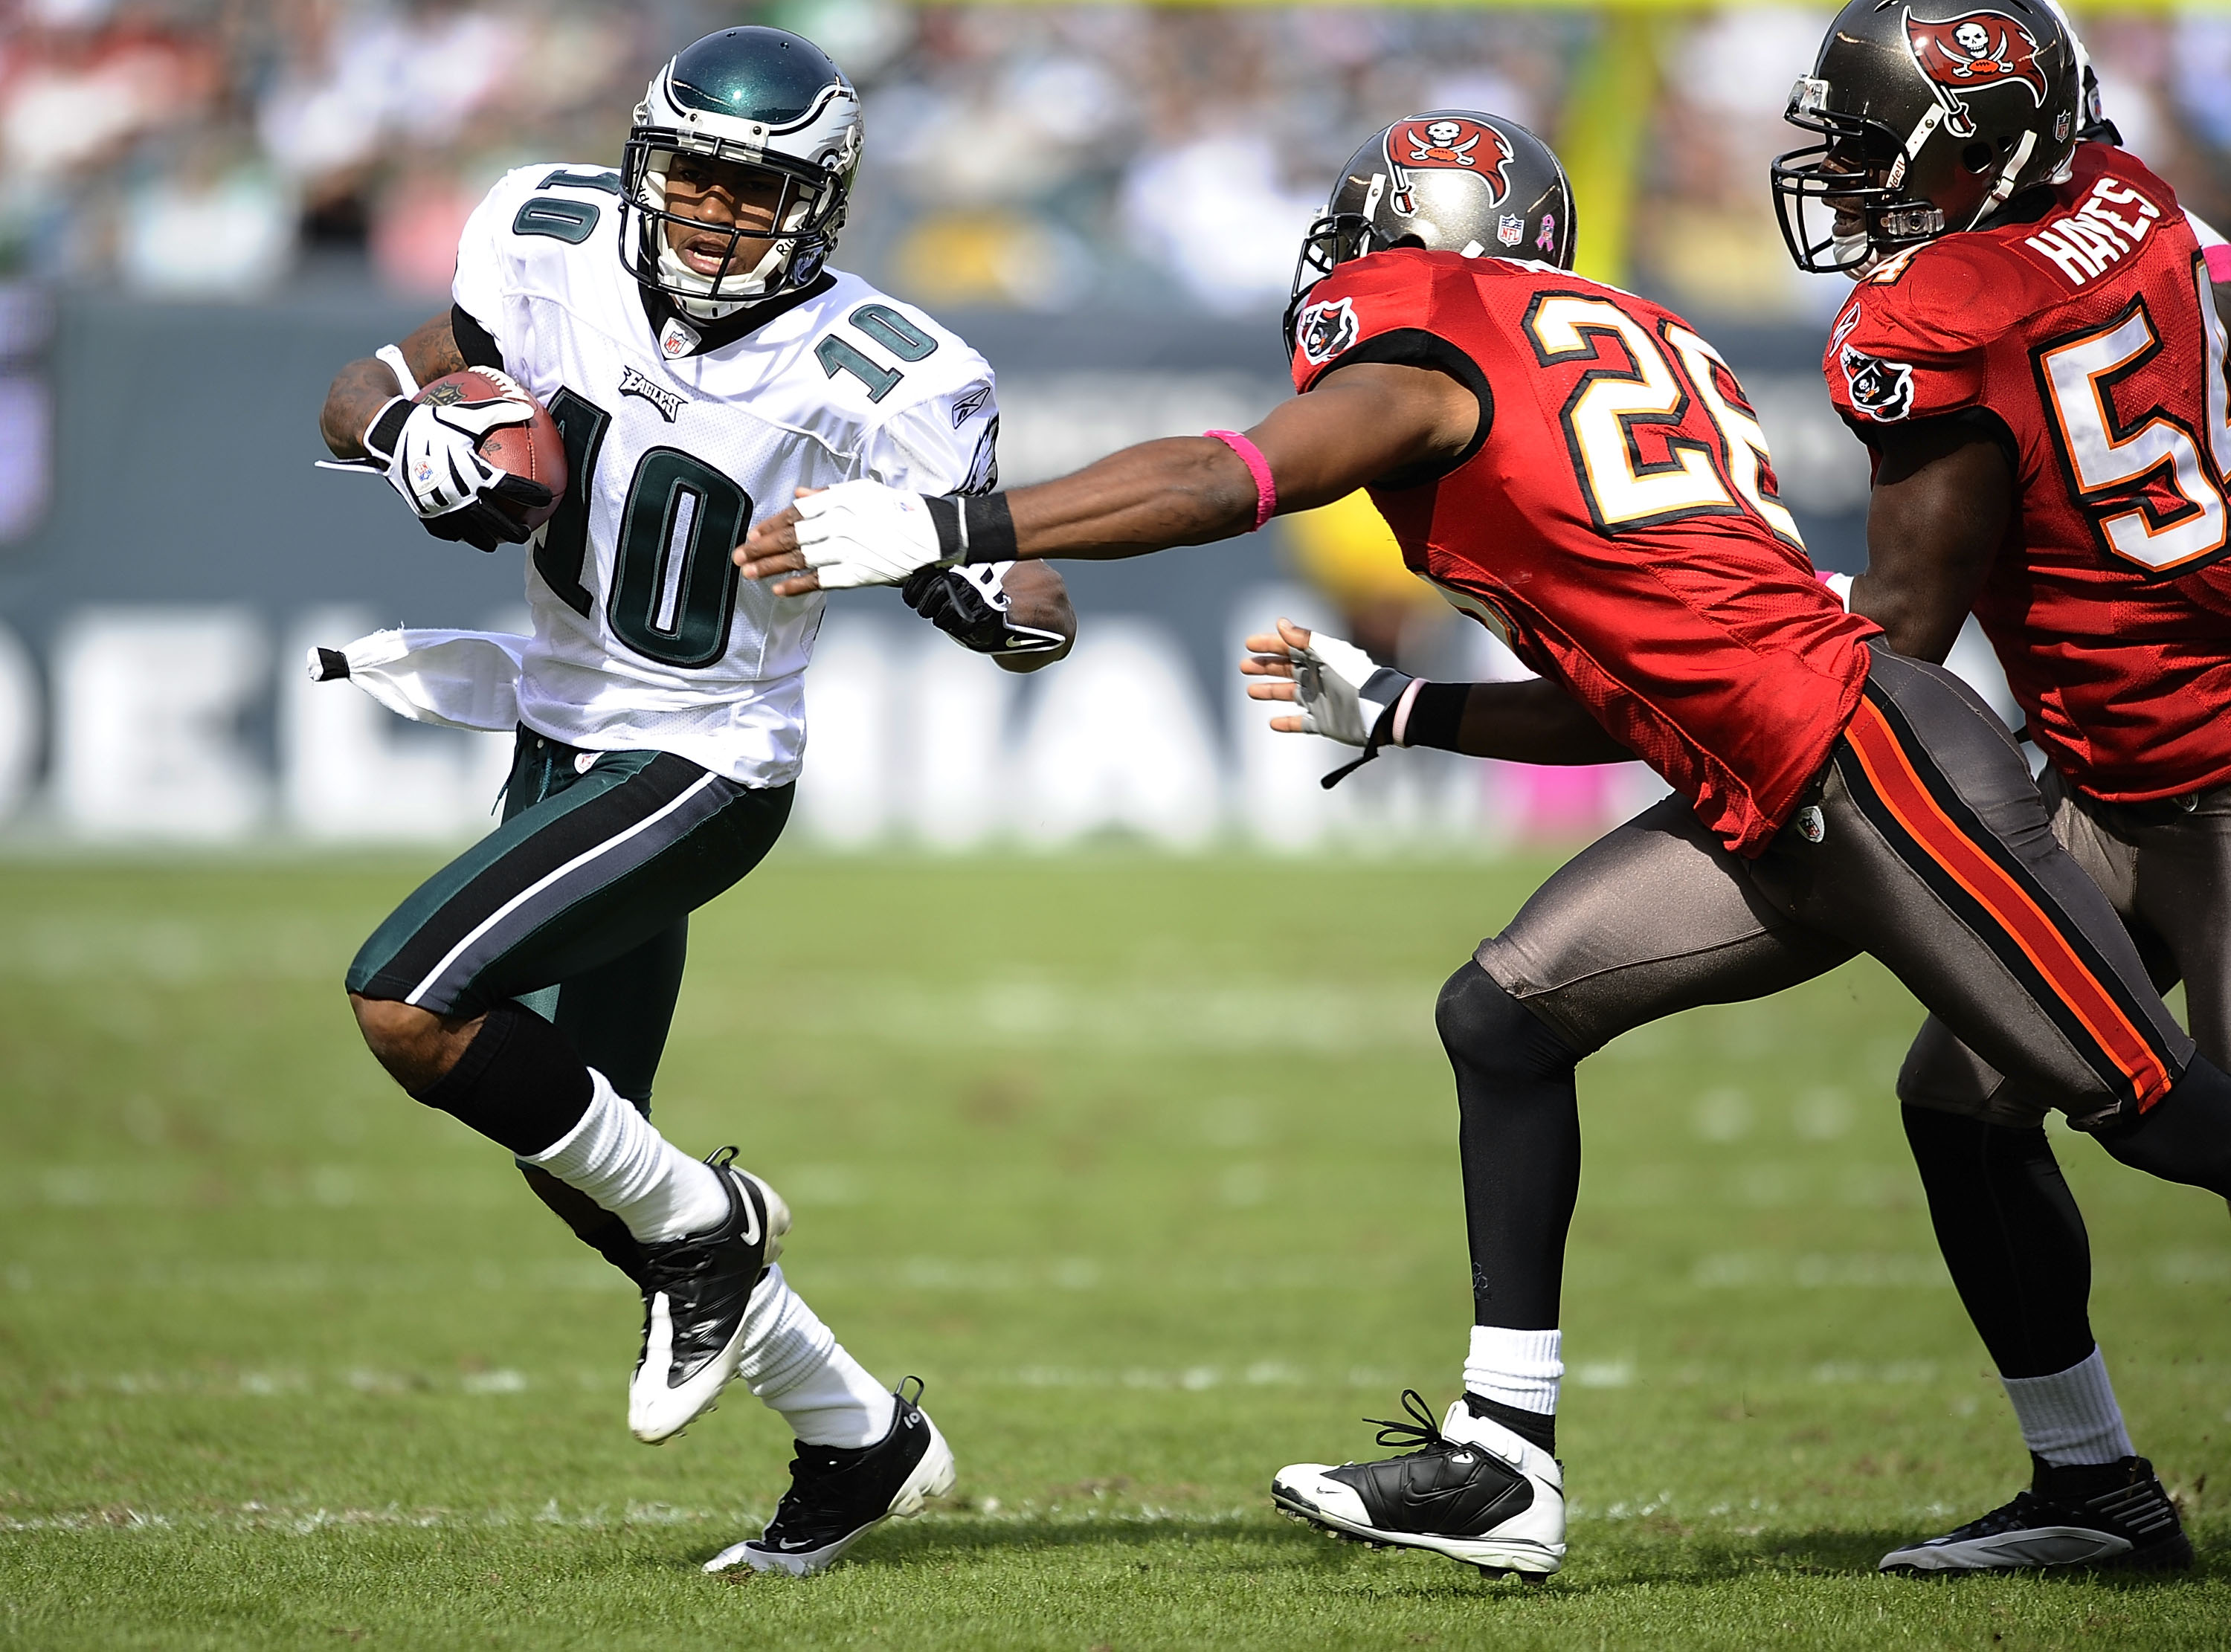 PHILADELPHIA - OCTOBER 11: DeSean Jackson #10 of the Philadelphia Eagles tries to get around Will Allen #26 and Geno Haynes #54 of the Tampa Bay Buccaneers at Lincoln Financial Field on October 11, 2009 in Philadelphia, Pennsylvania.  (Photo by Jeff Zelev